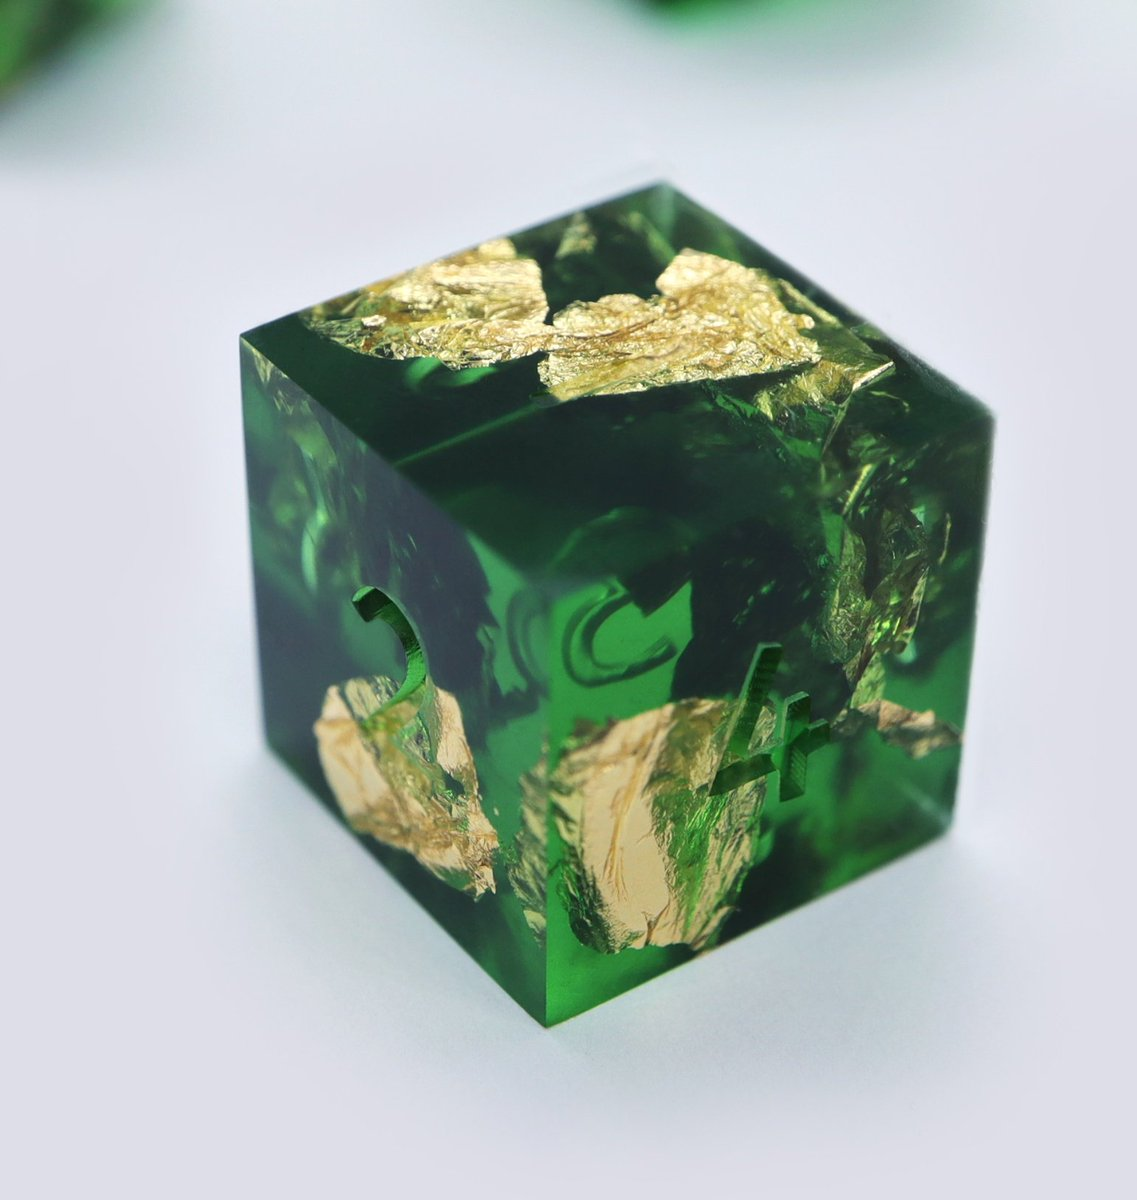 Fool's Gold  Wealth and riches beyond imagination, but is it really there?  #dnd #dnd5e #dungeonsanddragons #ttrpg #dice #handmadedice<br>http://pic.twitter.com/D9V7mx6vQp